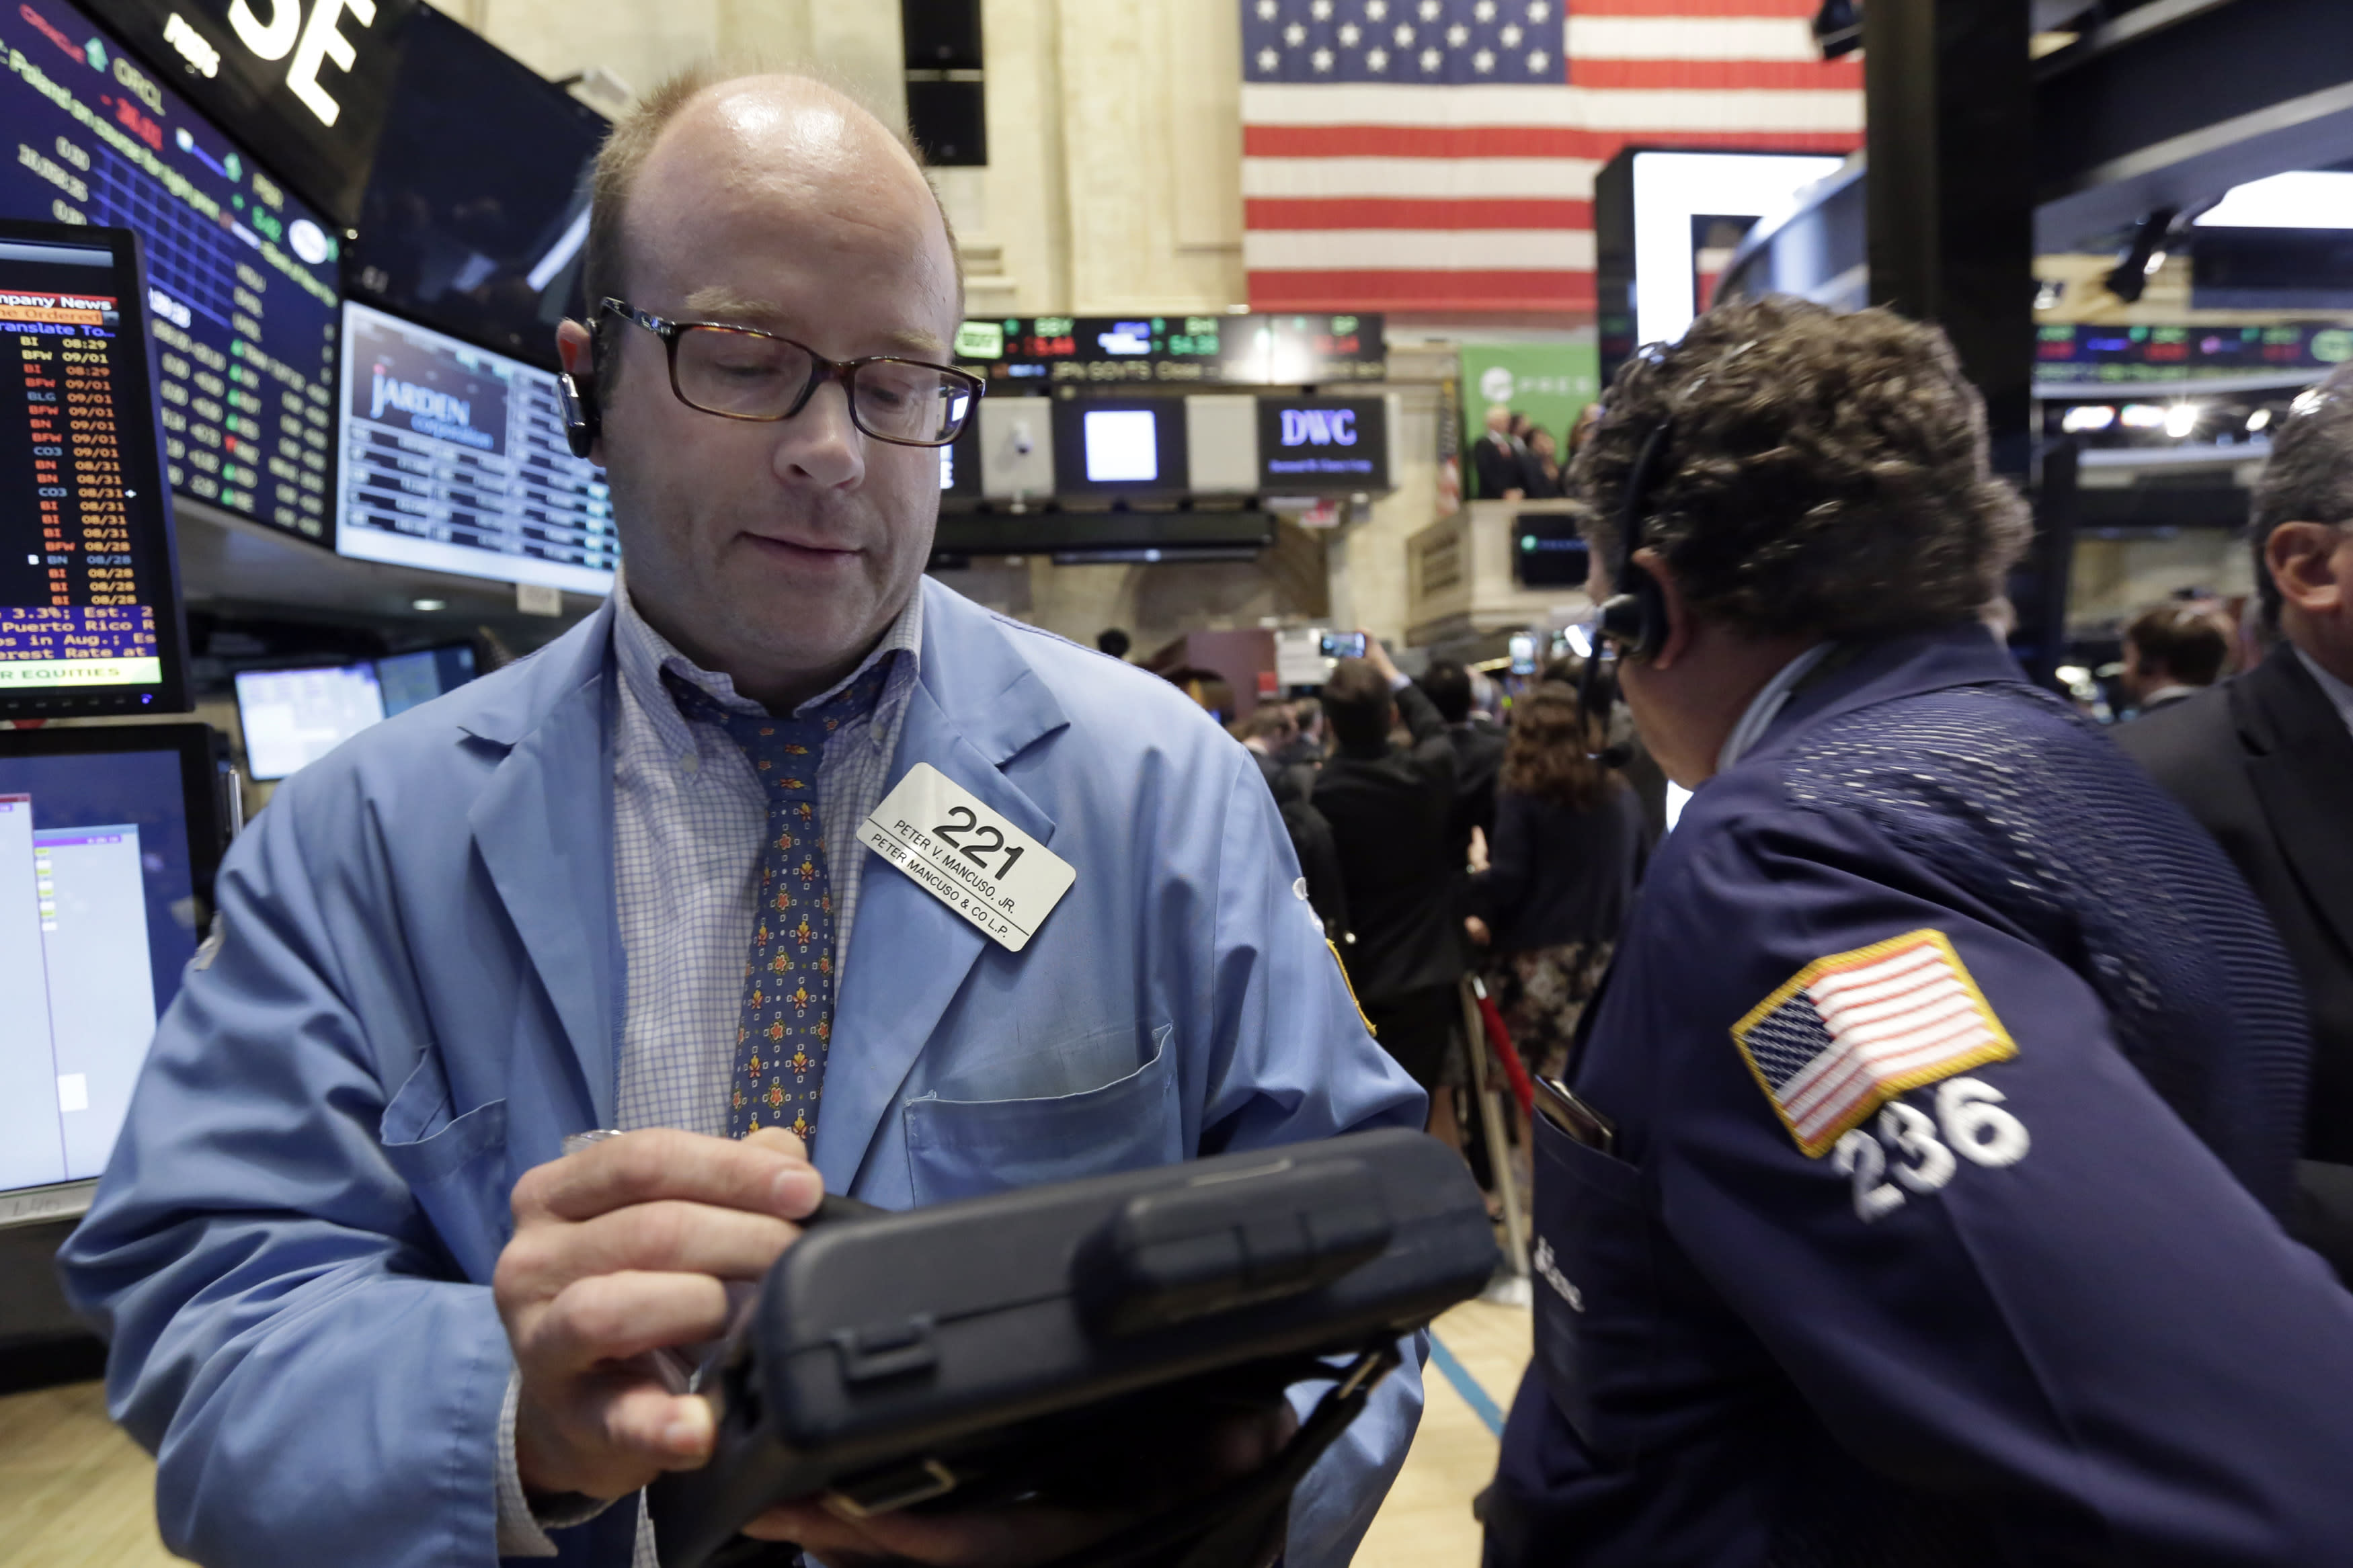 Stocks end week lower after U.S. jobs data leaves Fed move unclear